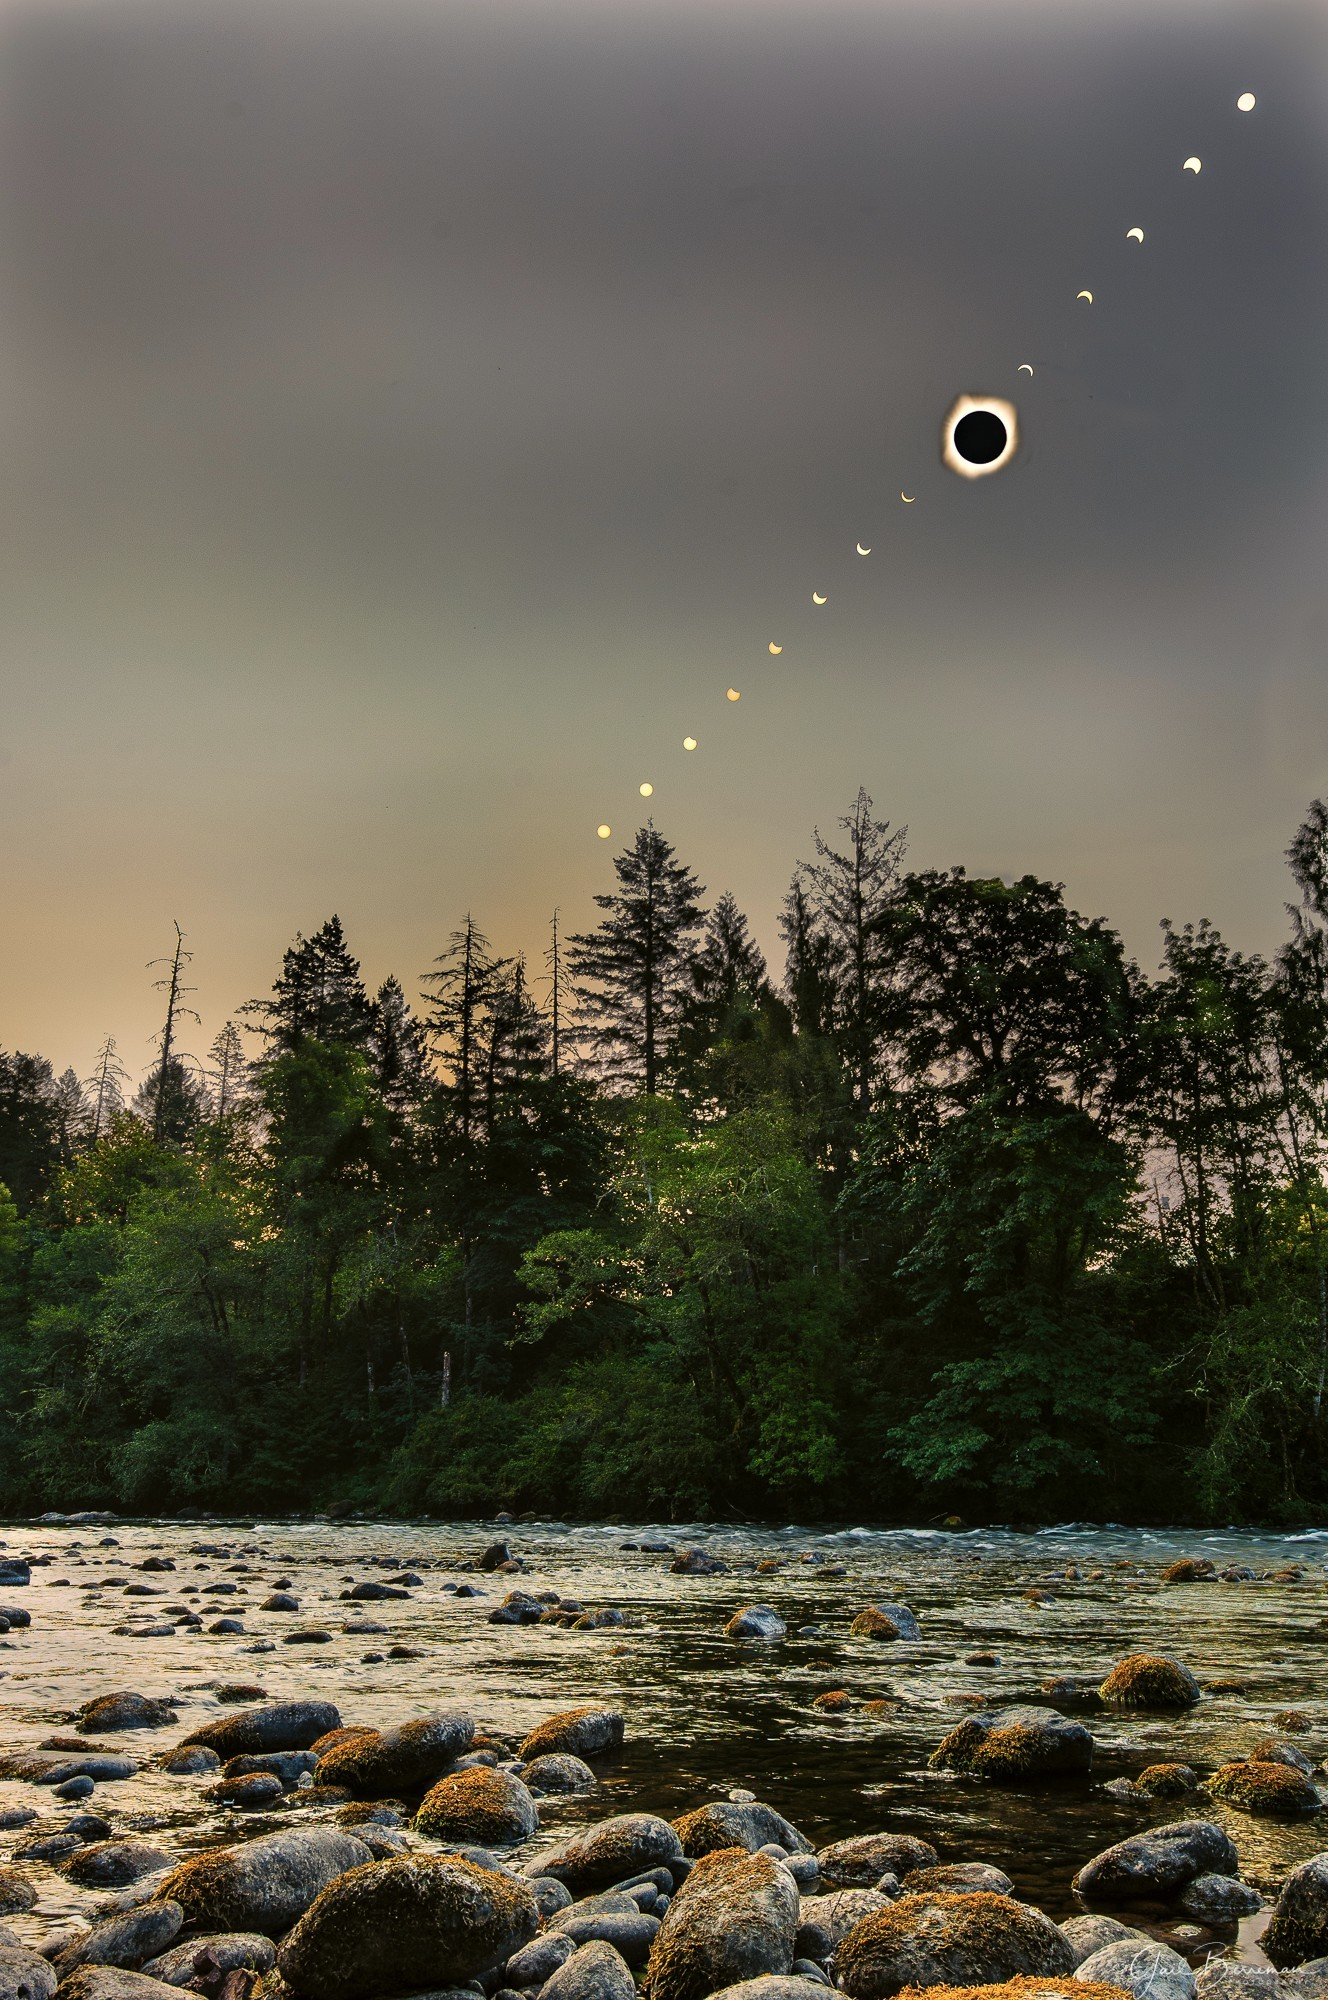 Solar Eclipse Composite 8/21/2017